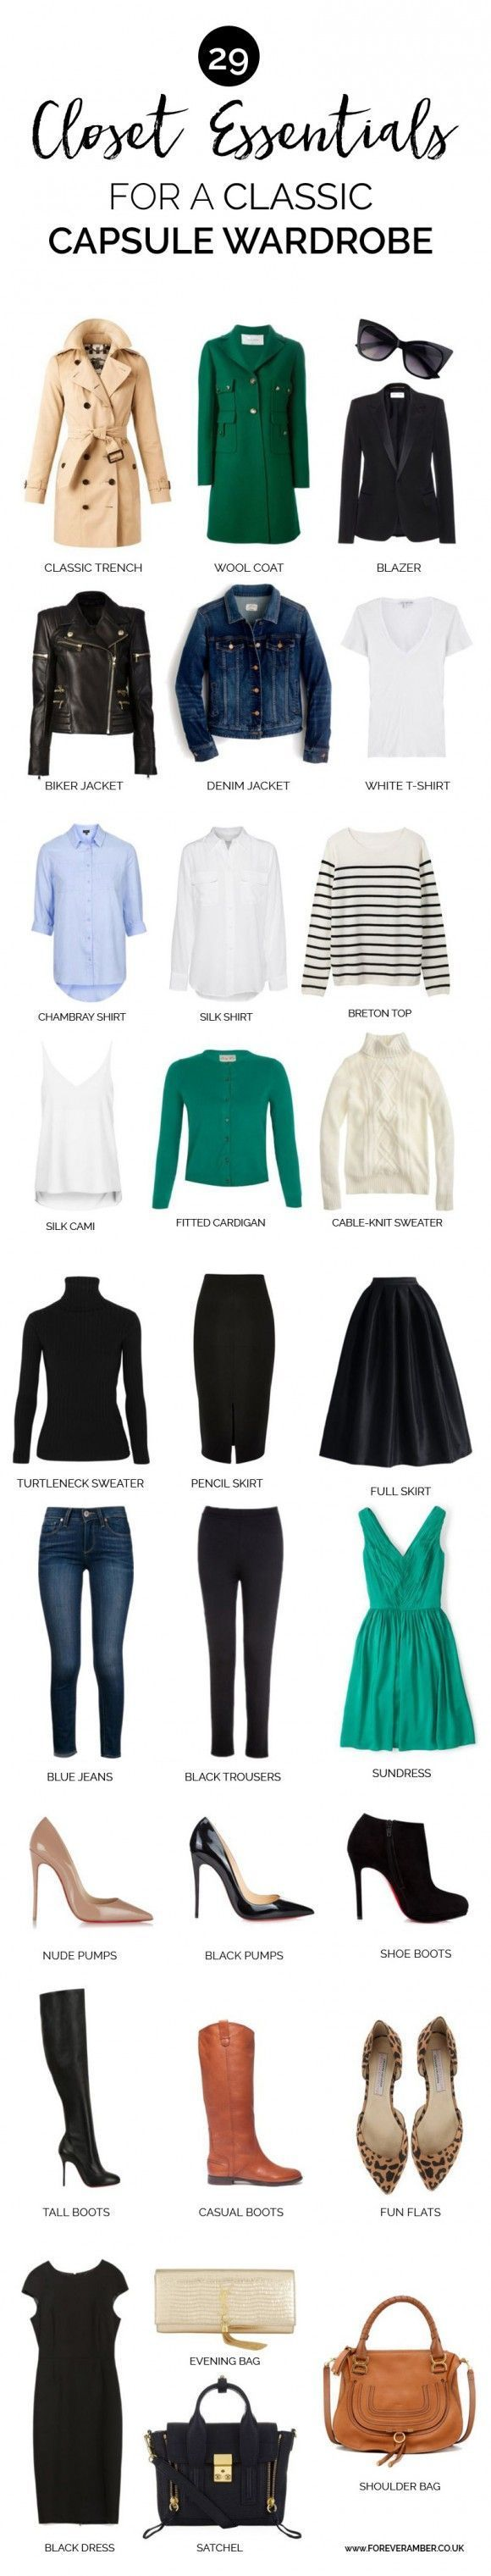 Wardrobe essentials for a classic capsule wardrobe. I would change out black and ditch heels.